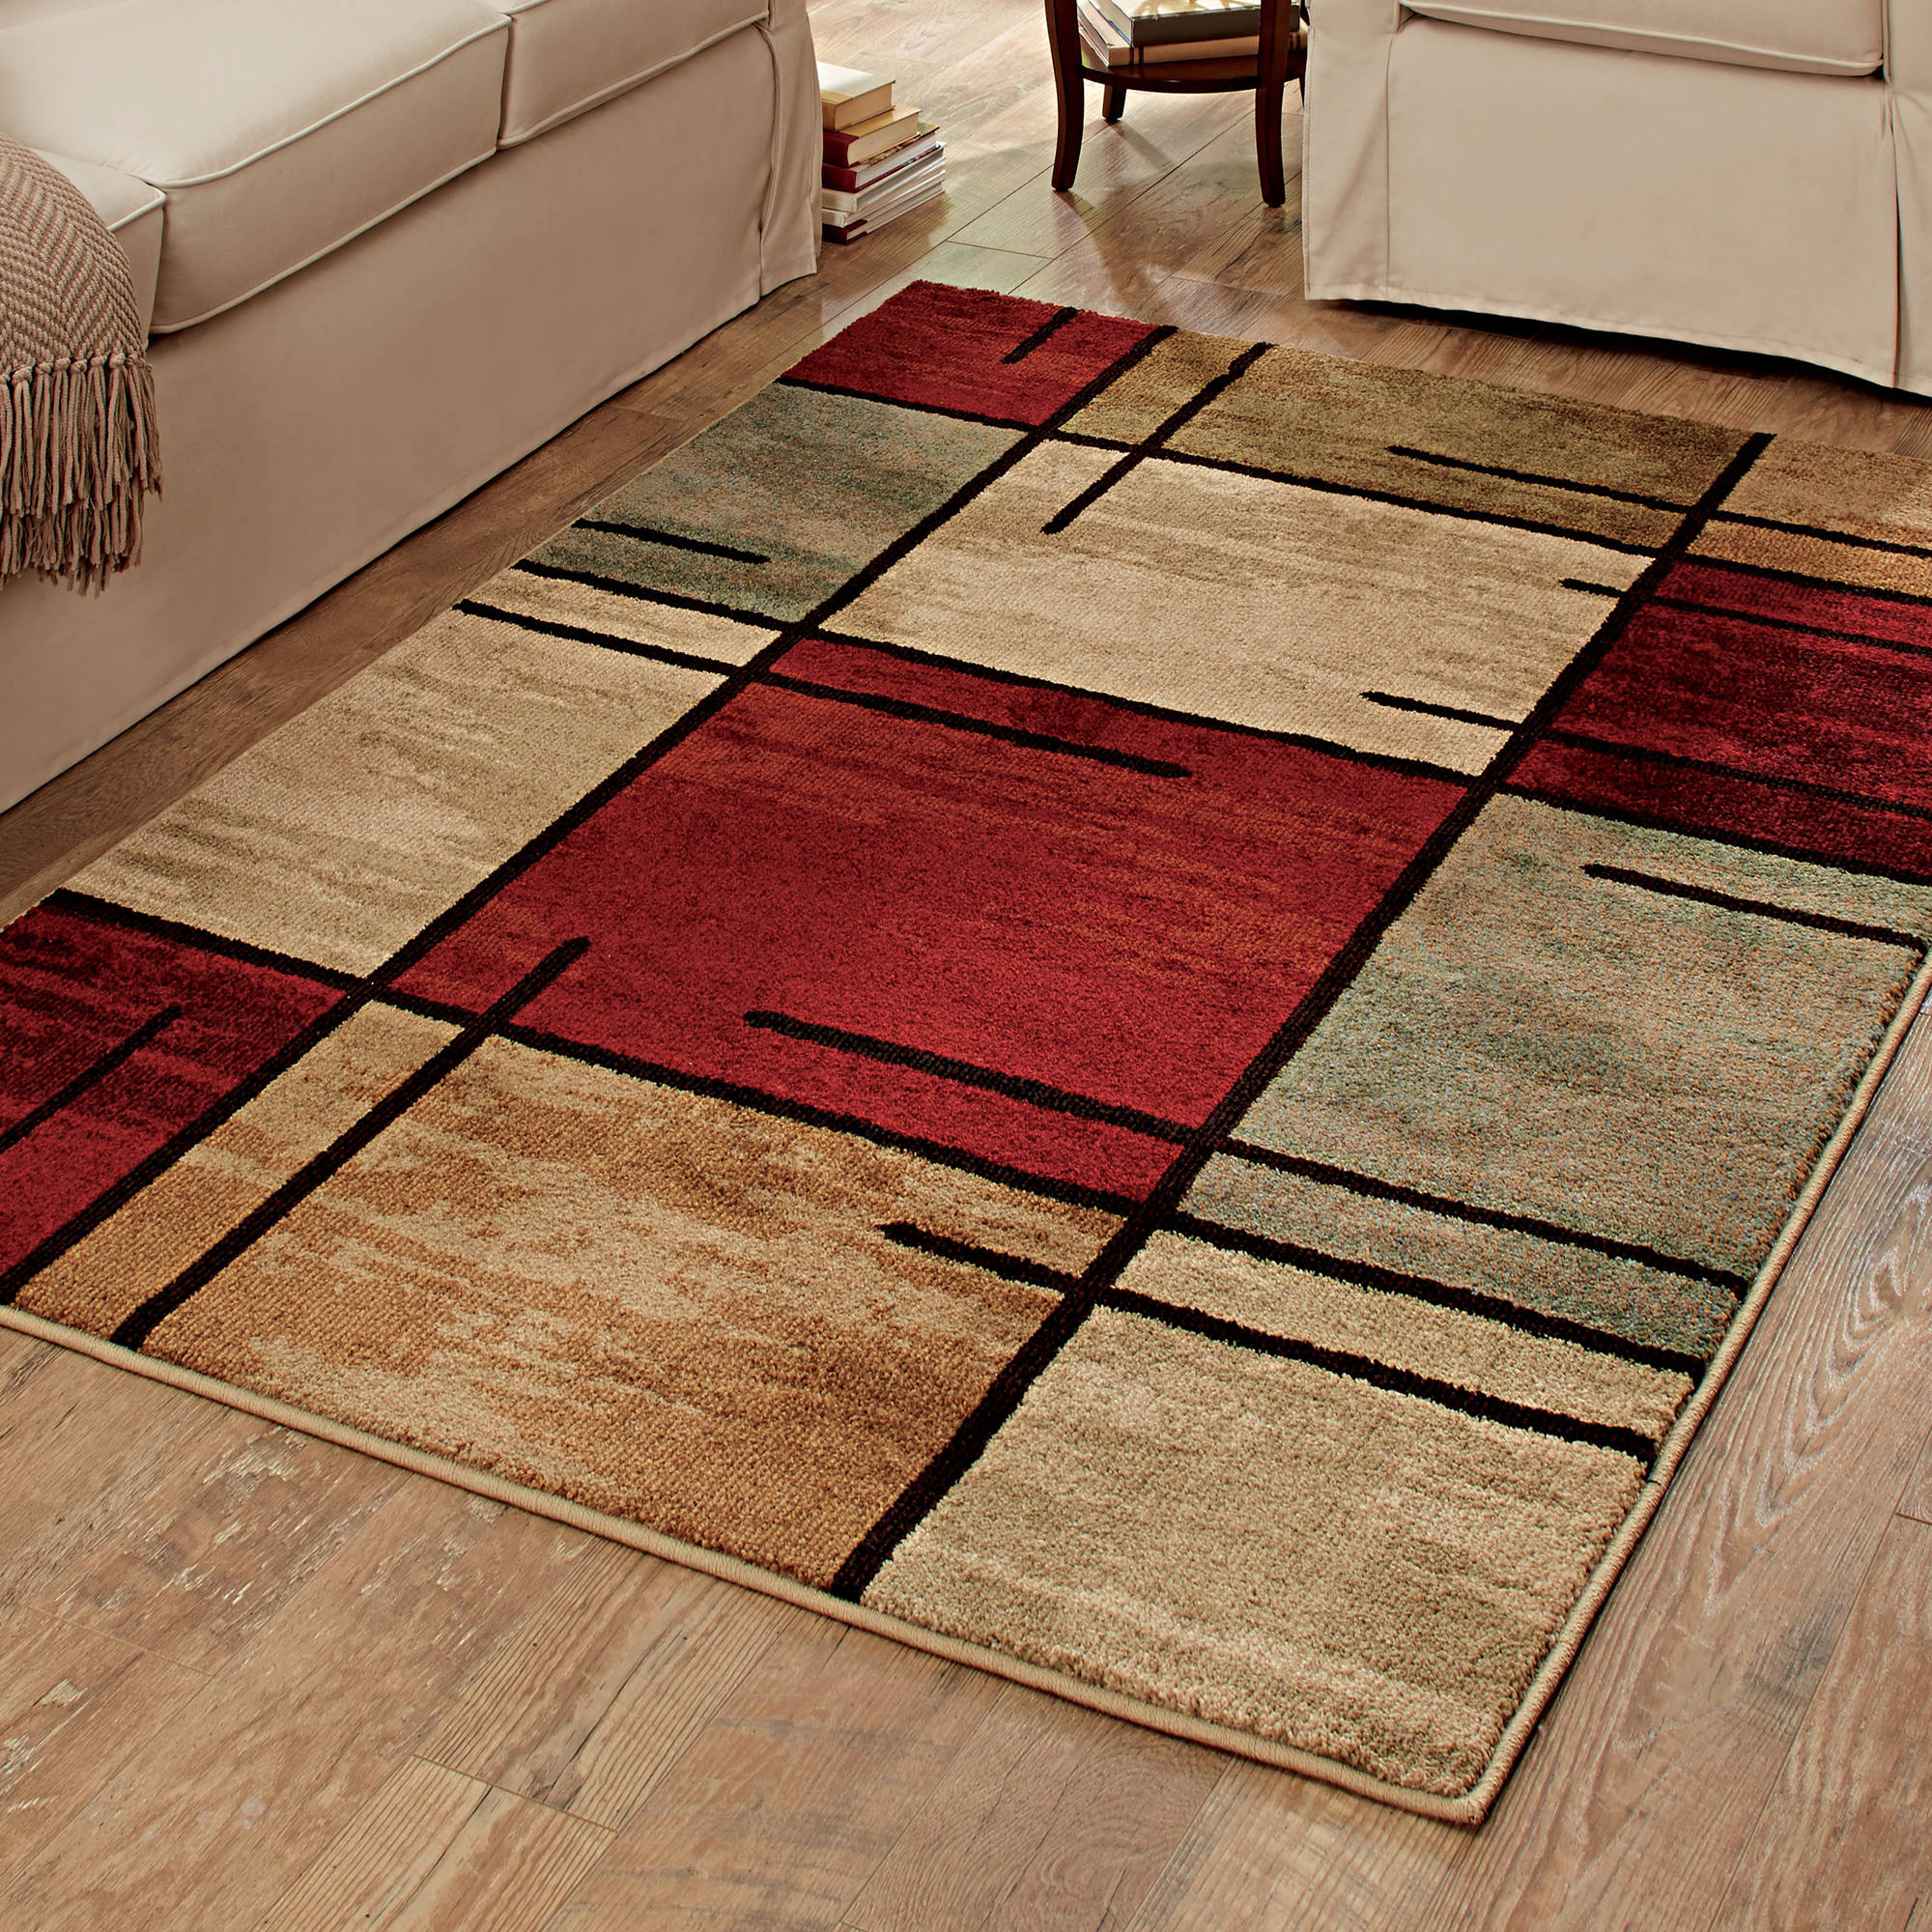 home rugs better homes and gardens spice grid area rug - walmart.com LBZSHWI